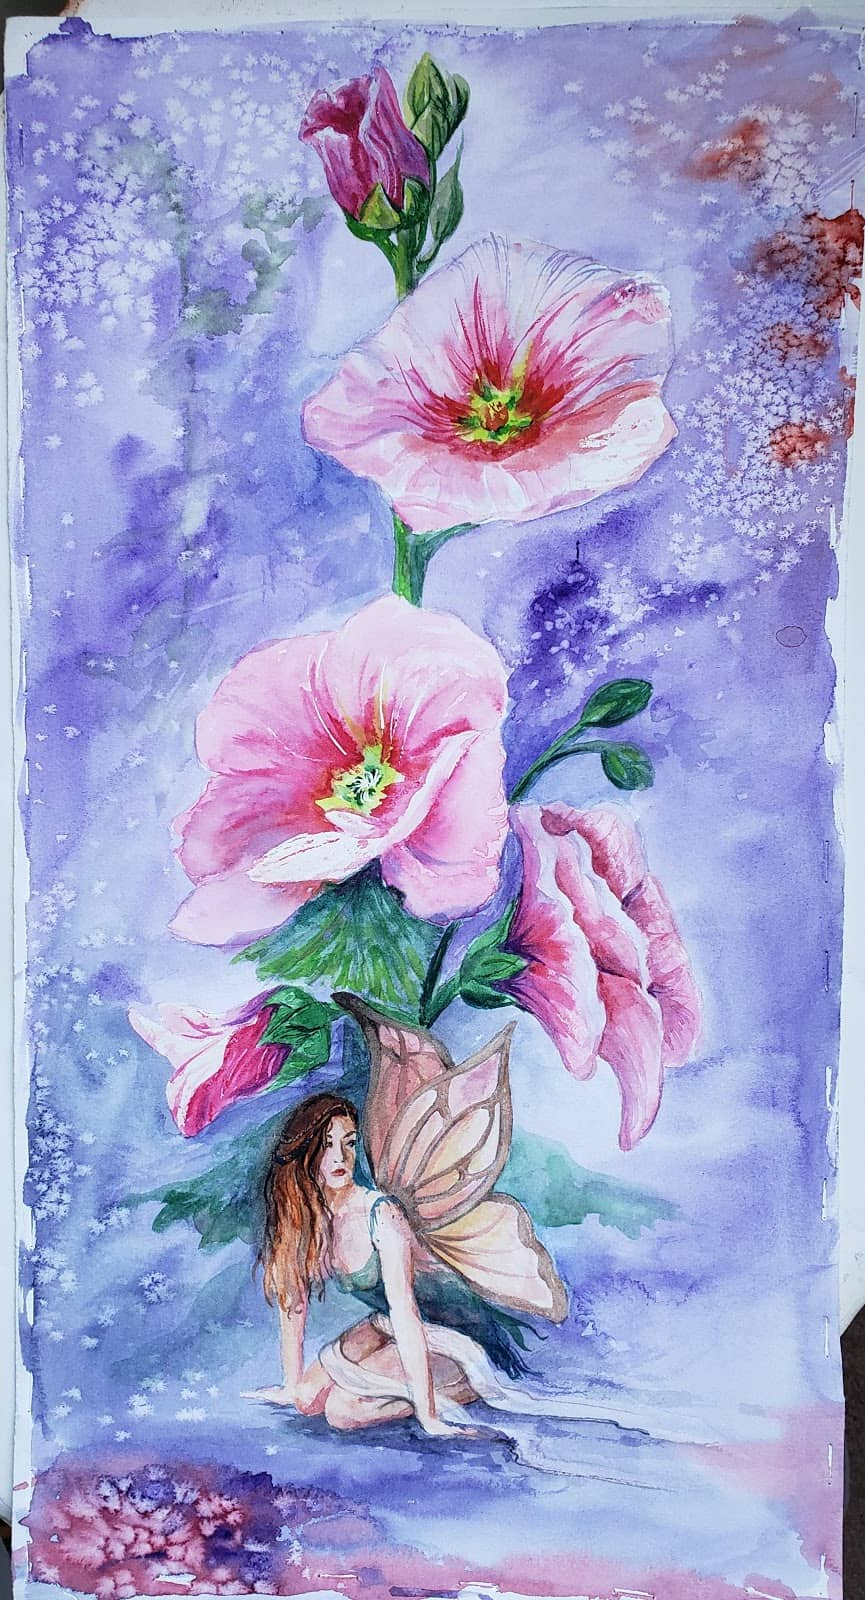 Hot Press or Cold Press Watercolor - Image 2 arches 140lb fairy and salt